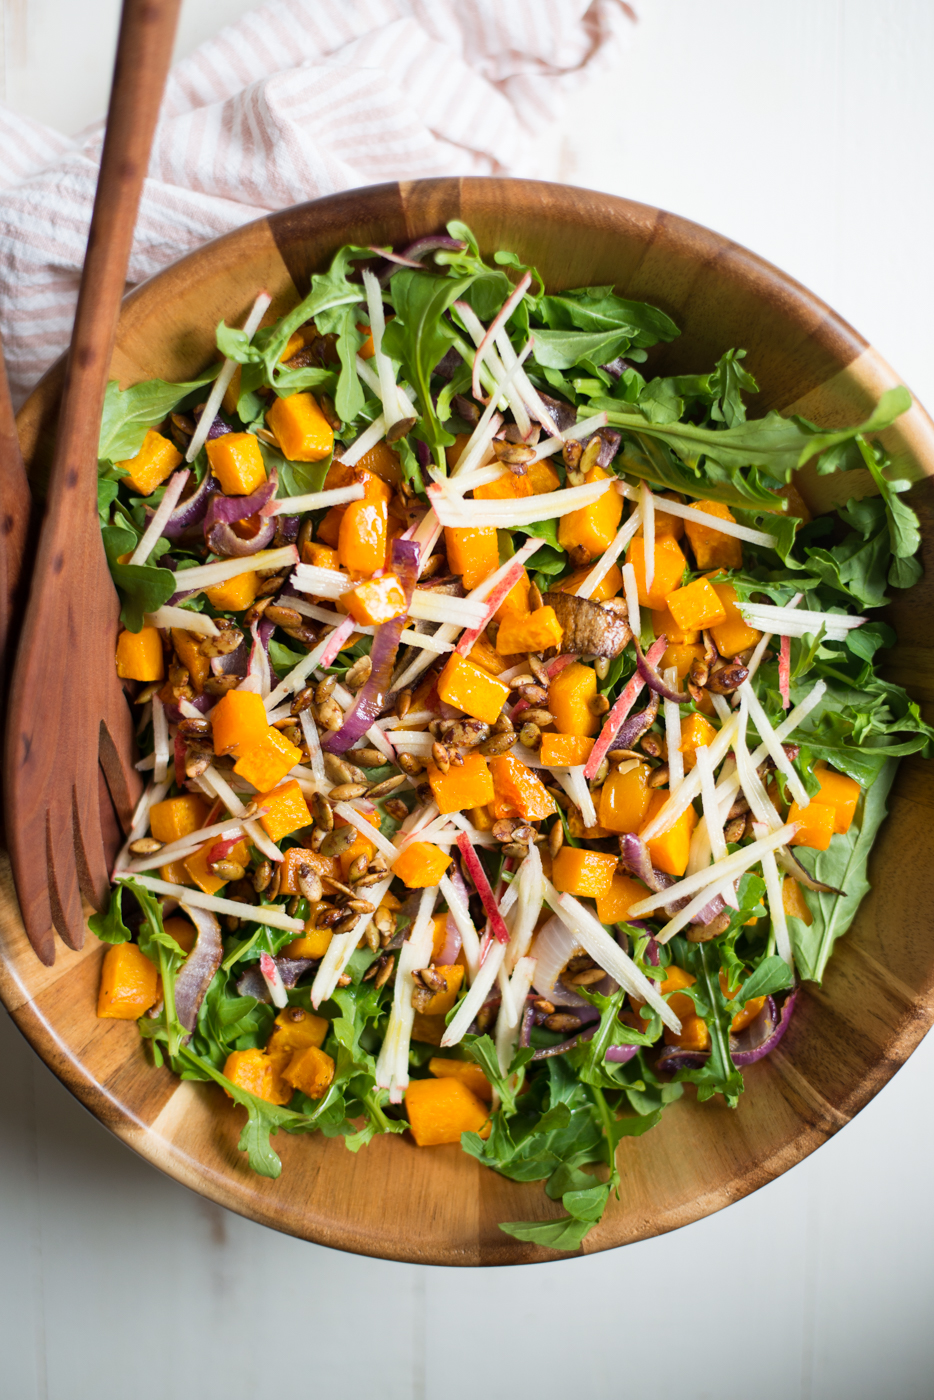 Roasted Butternut Squash Harvest Salad is bursting with fresh fall flavors and perfect for your autumn holiday table or any night of the week. A gluten-free, dairy-free, paleo, whole30 recipe. #realfoodwholelife #realfoodwholeliferecipe #recipe #salad #paleo #paleorecipe #glutenfree #grainfree #dairyfree #healthy #healthyrecipe #easyrecipe #quickrecipe #whole30 #whole30recipe #butternutsquash #fall #autumn